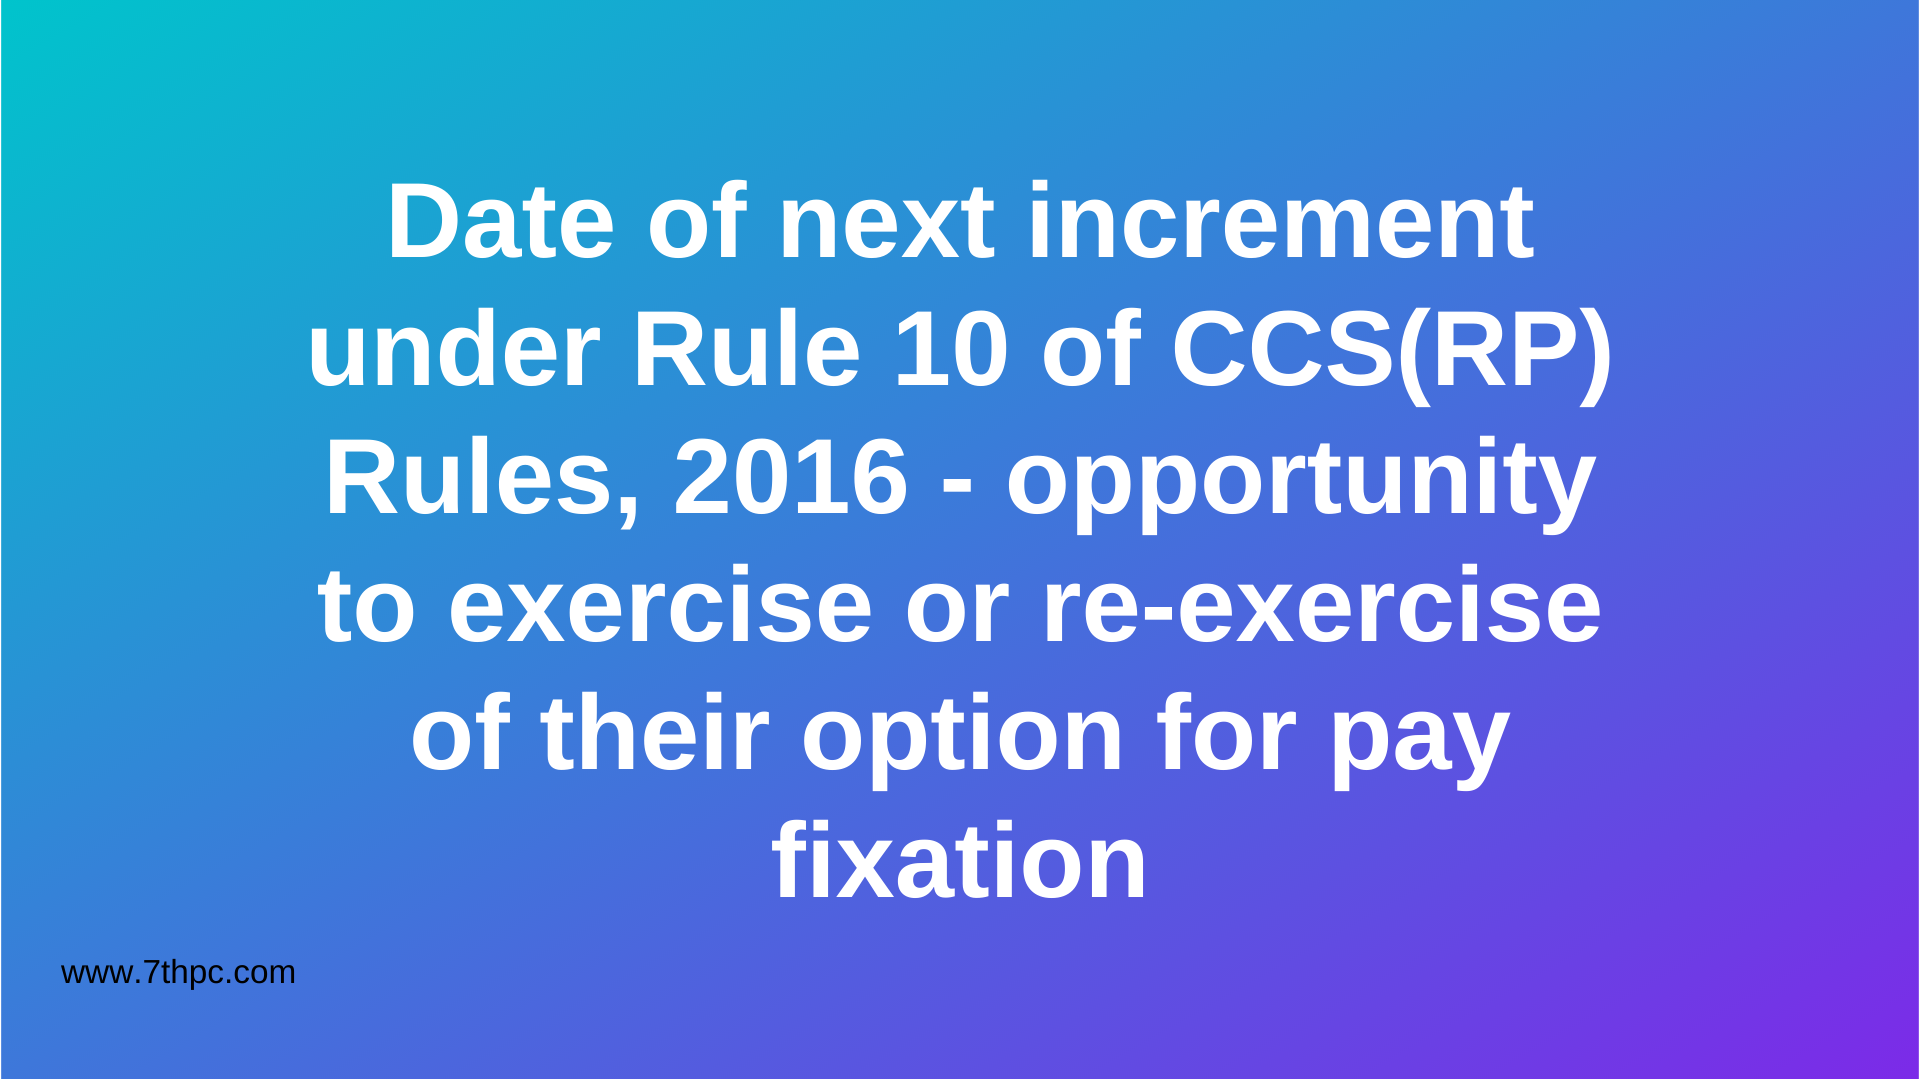 Date of next increment under Rule 10 of CCS(RP) Rules, 2016 - opportunity to exercise or re-exercise of their option for pay fixation